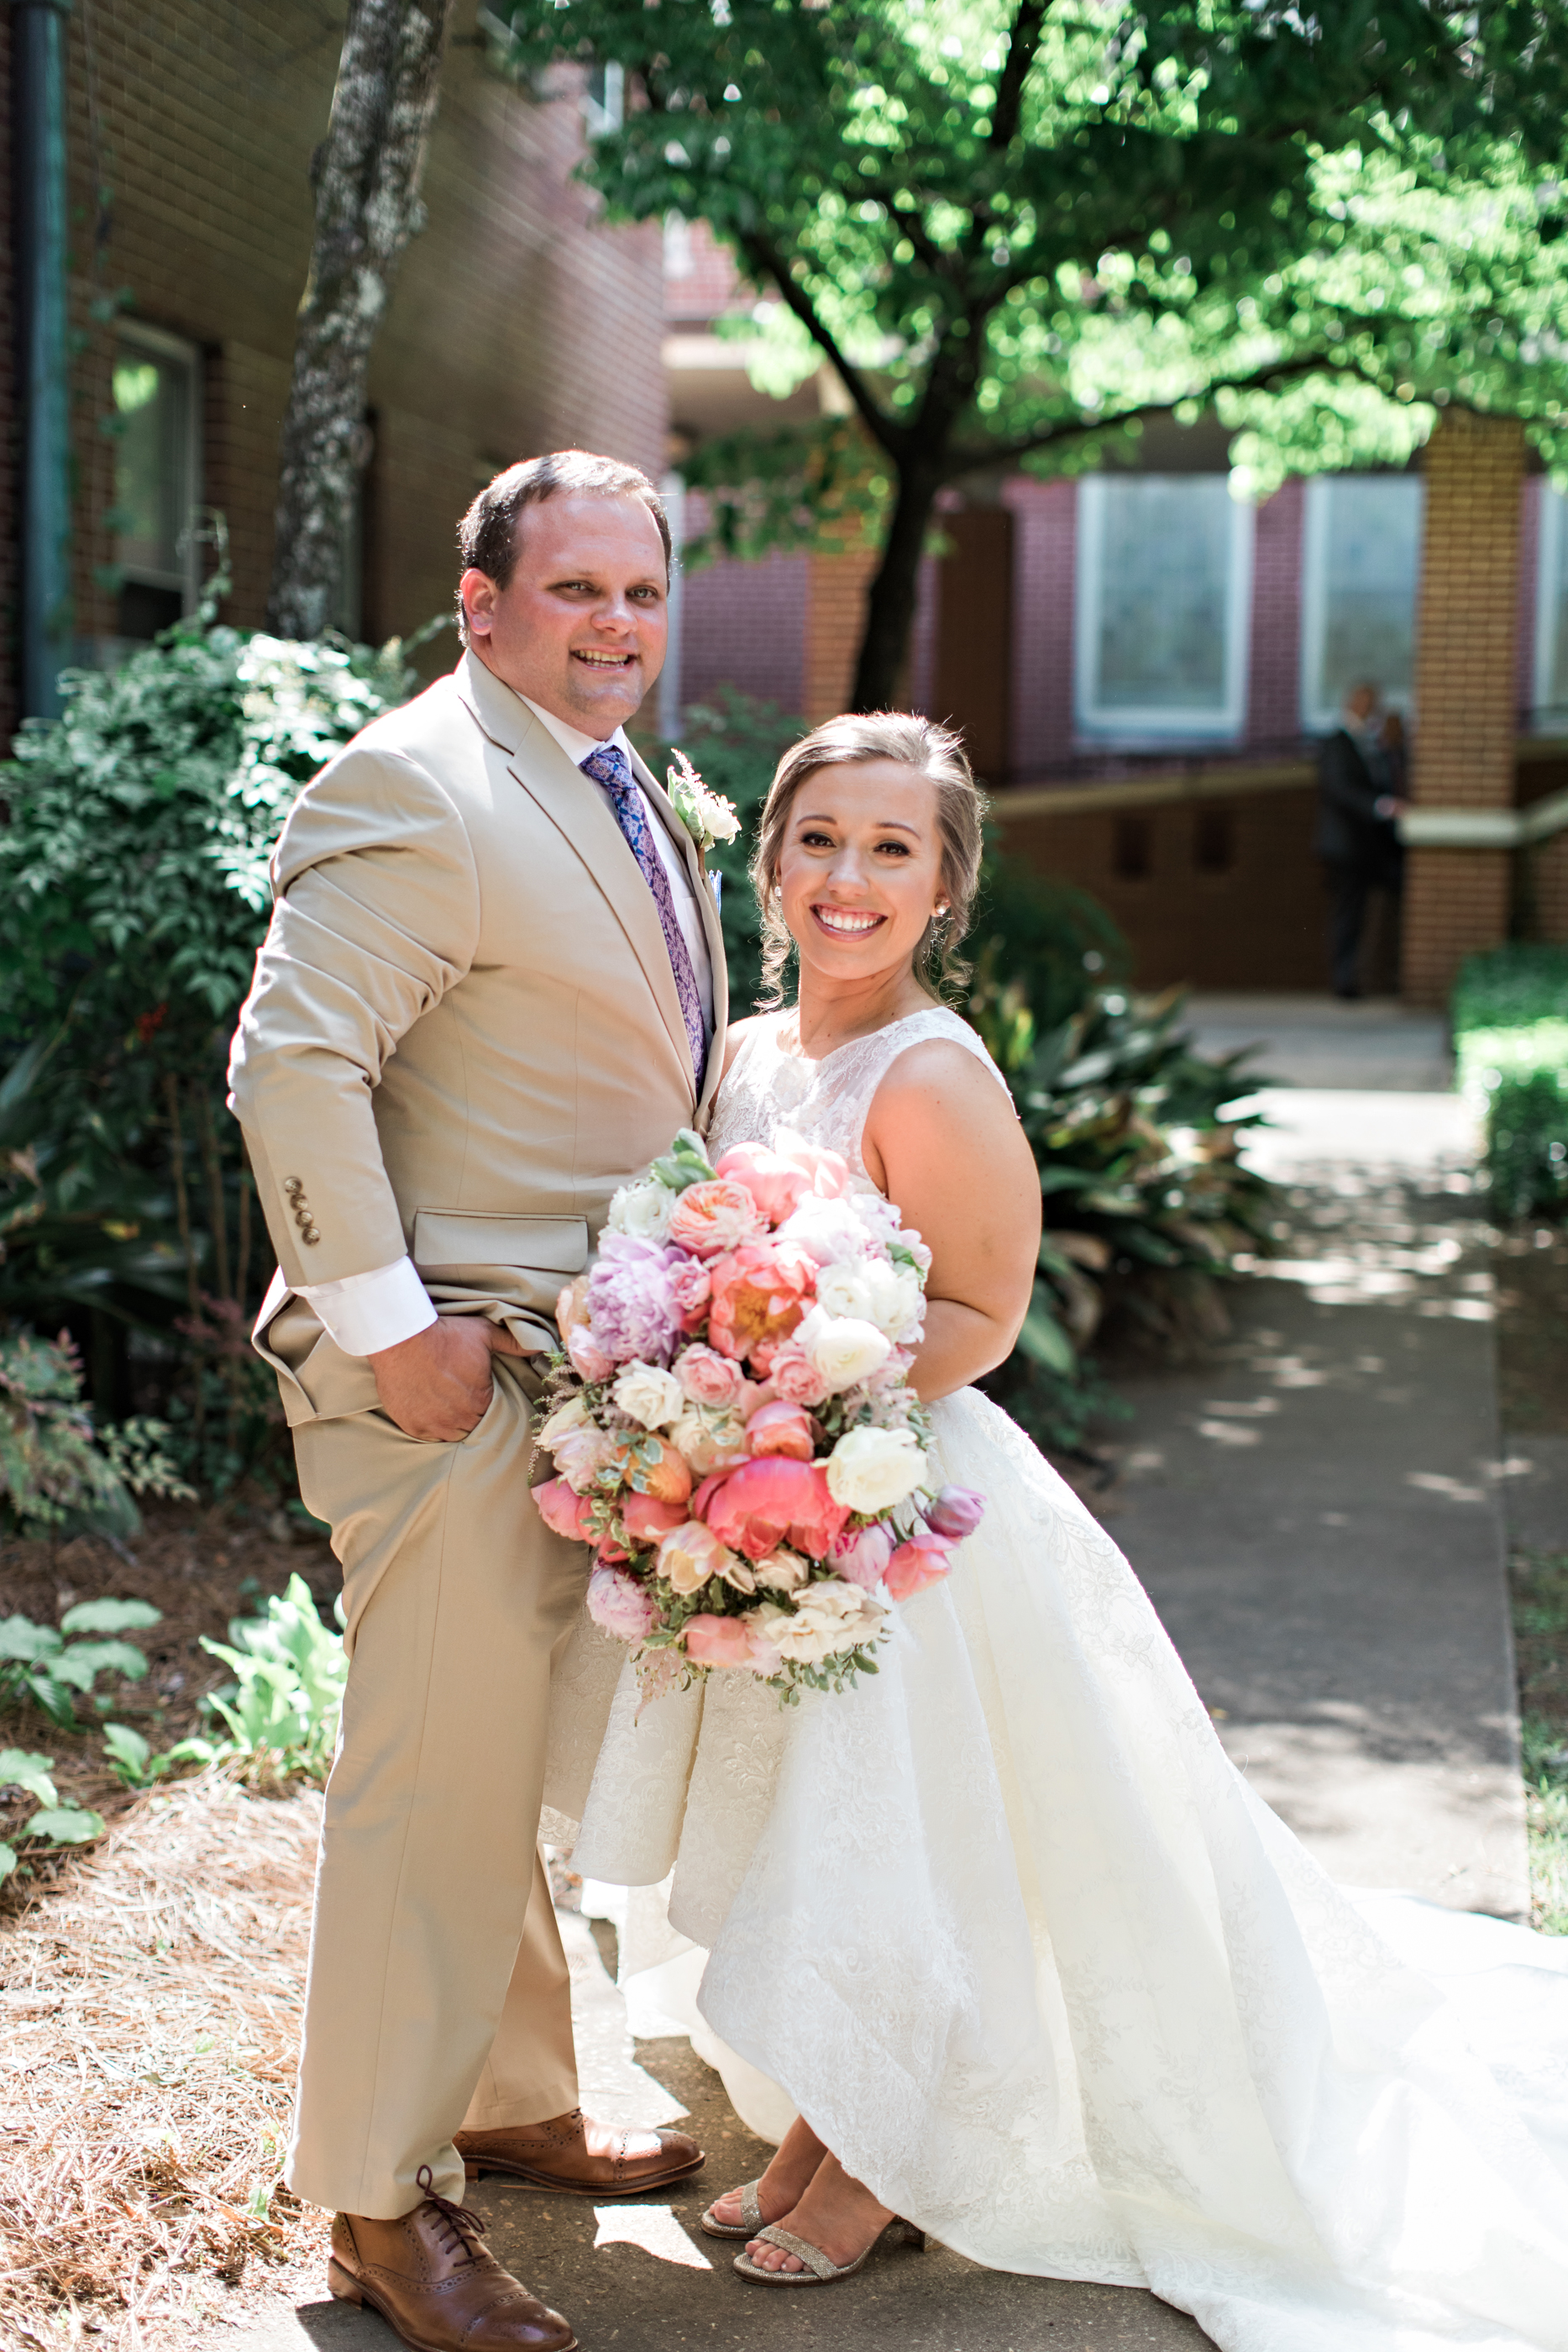 Alabama-Wedding-Photographers-Nick-Drollette-Hailey and Reed-110.jpg